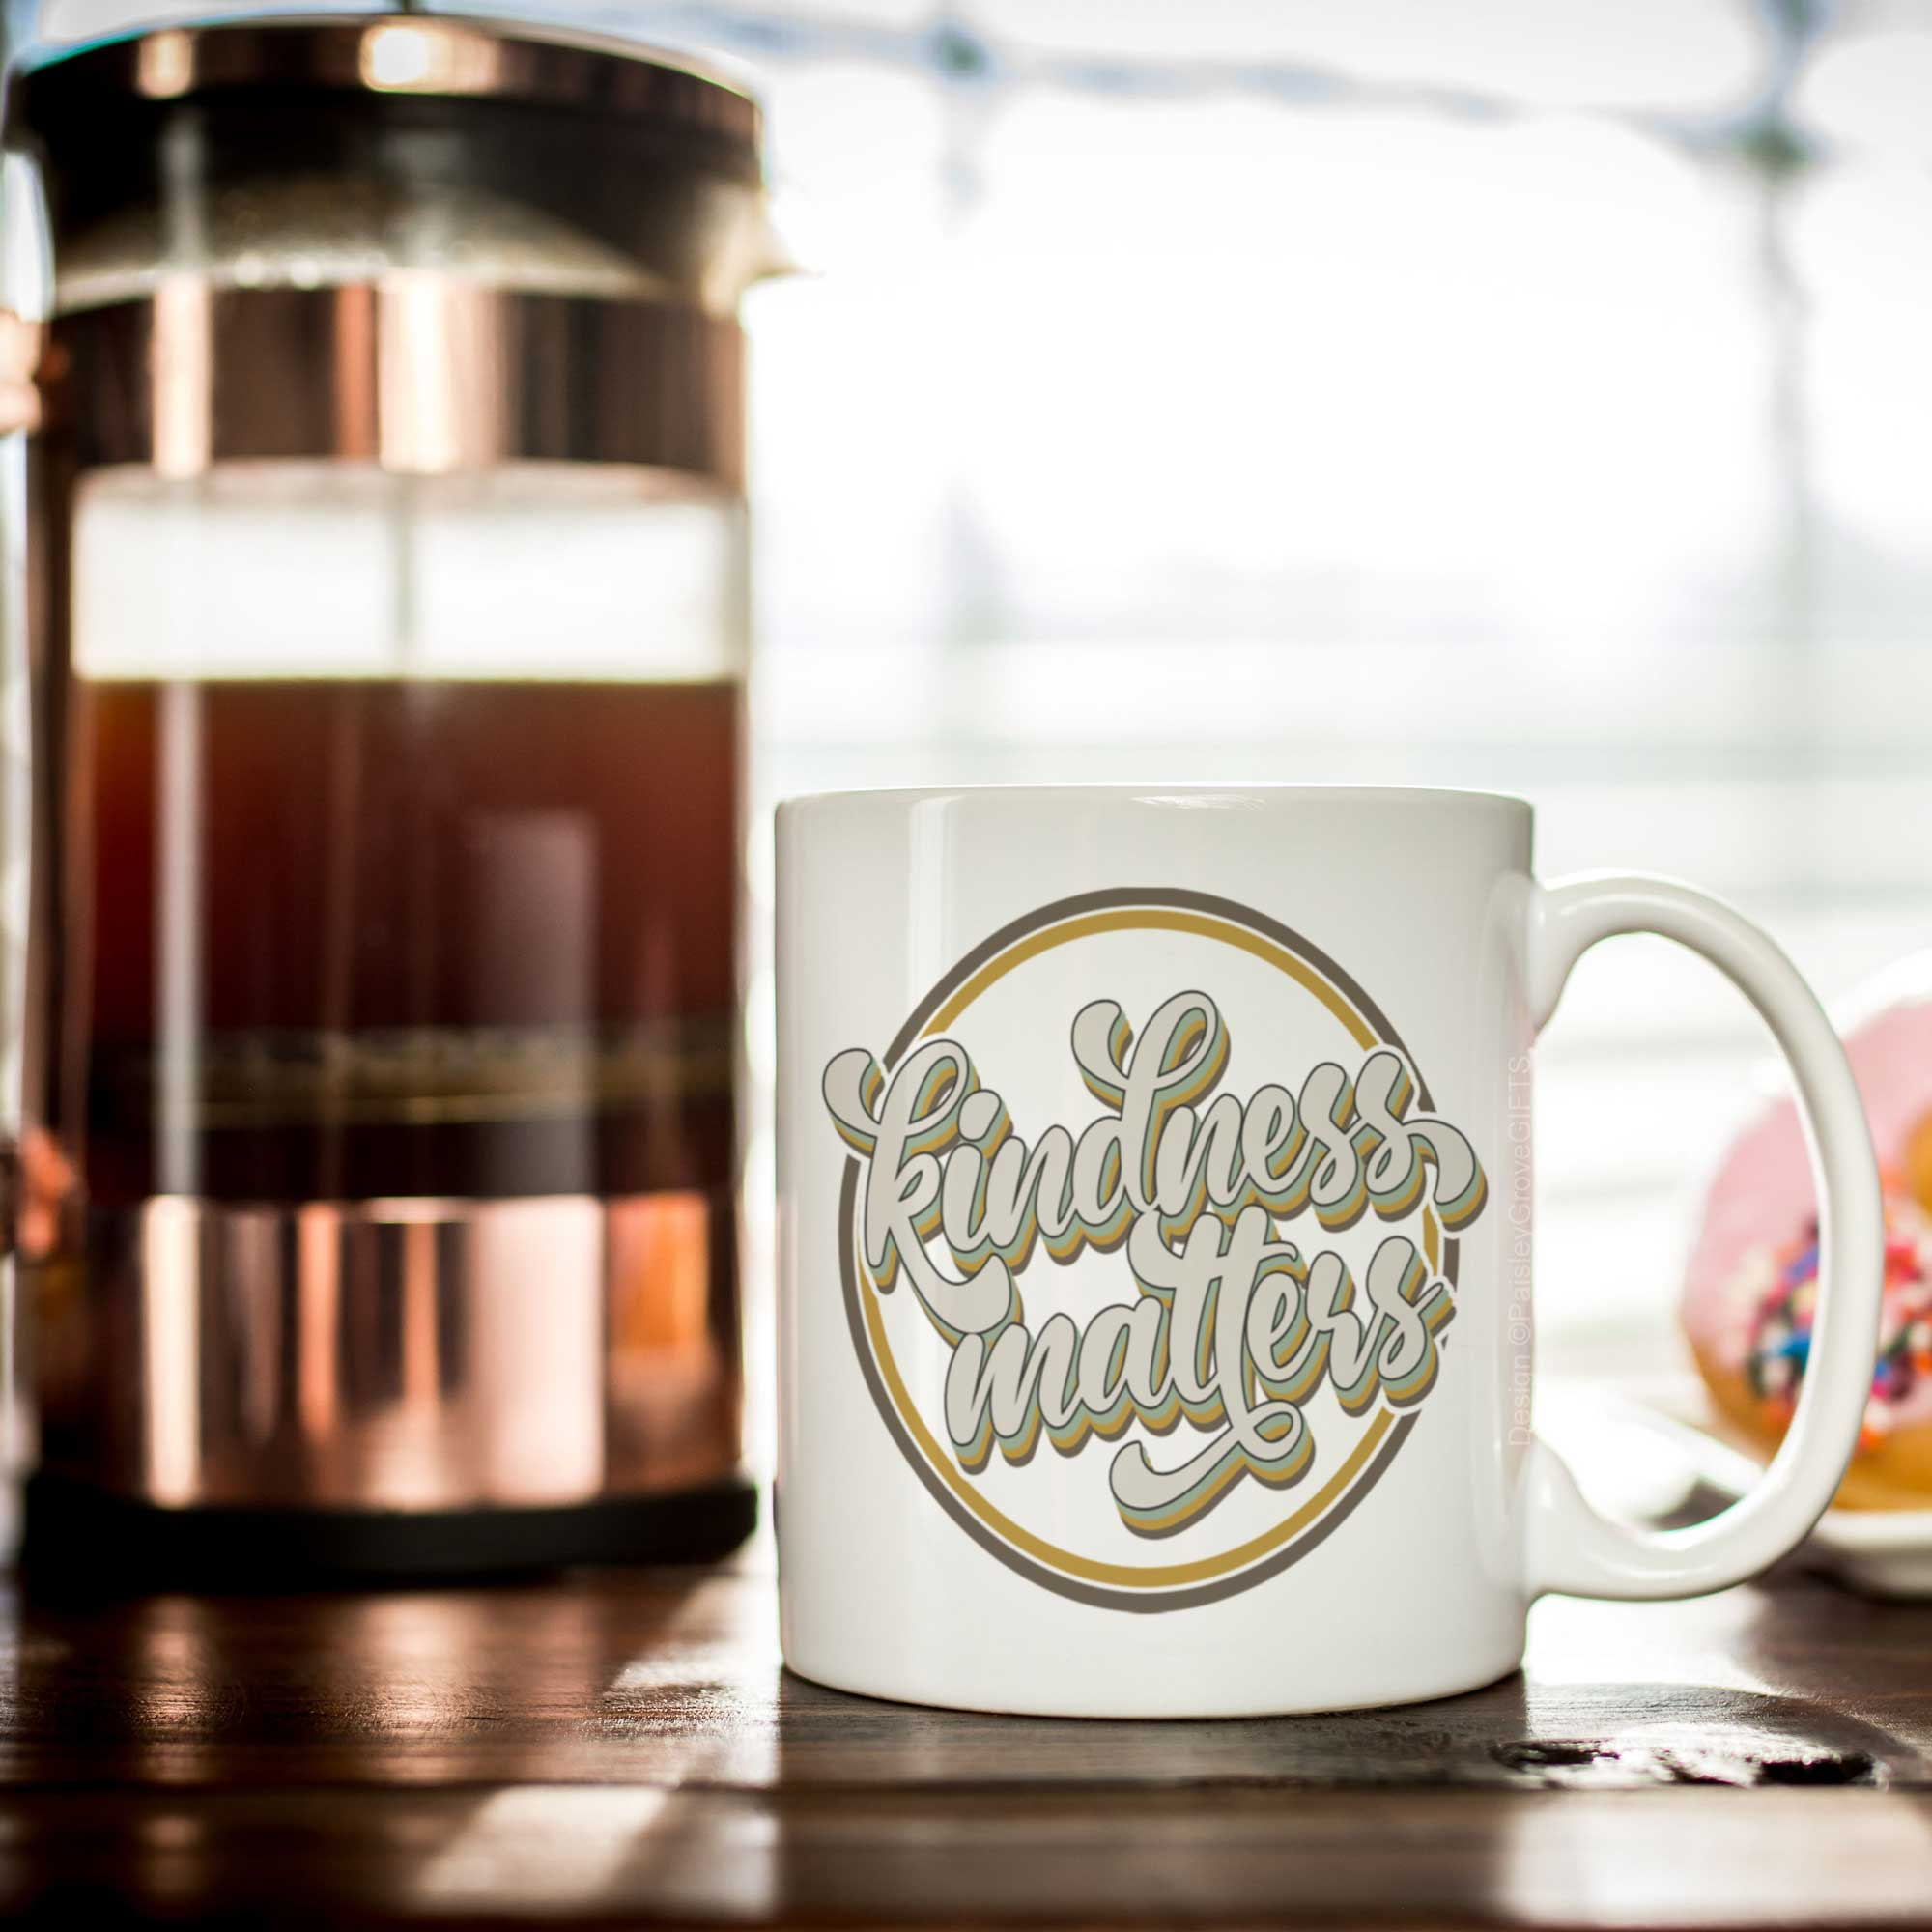 CopyrightPaisleyGroveGIFTS P001a Gift for Coffee Lovers Retro Kindness Matters Coffee Mug